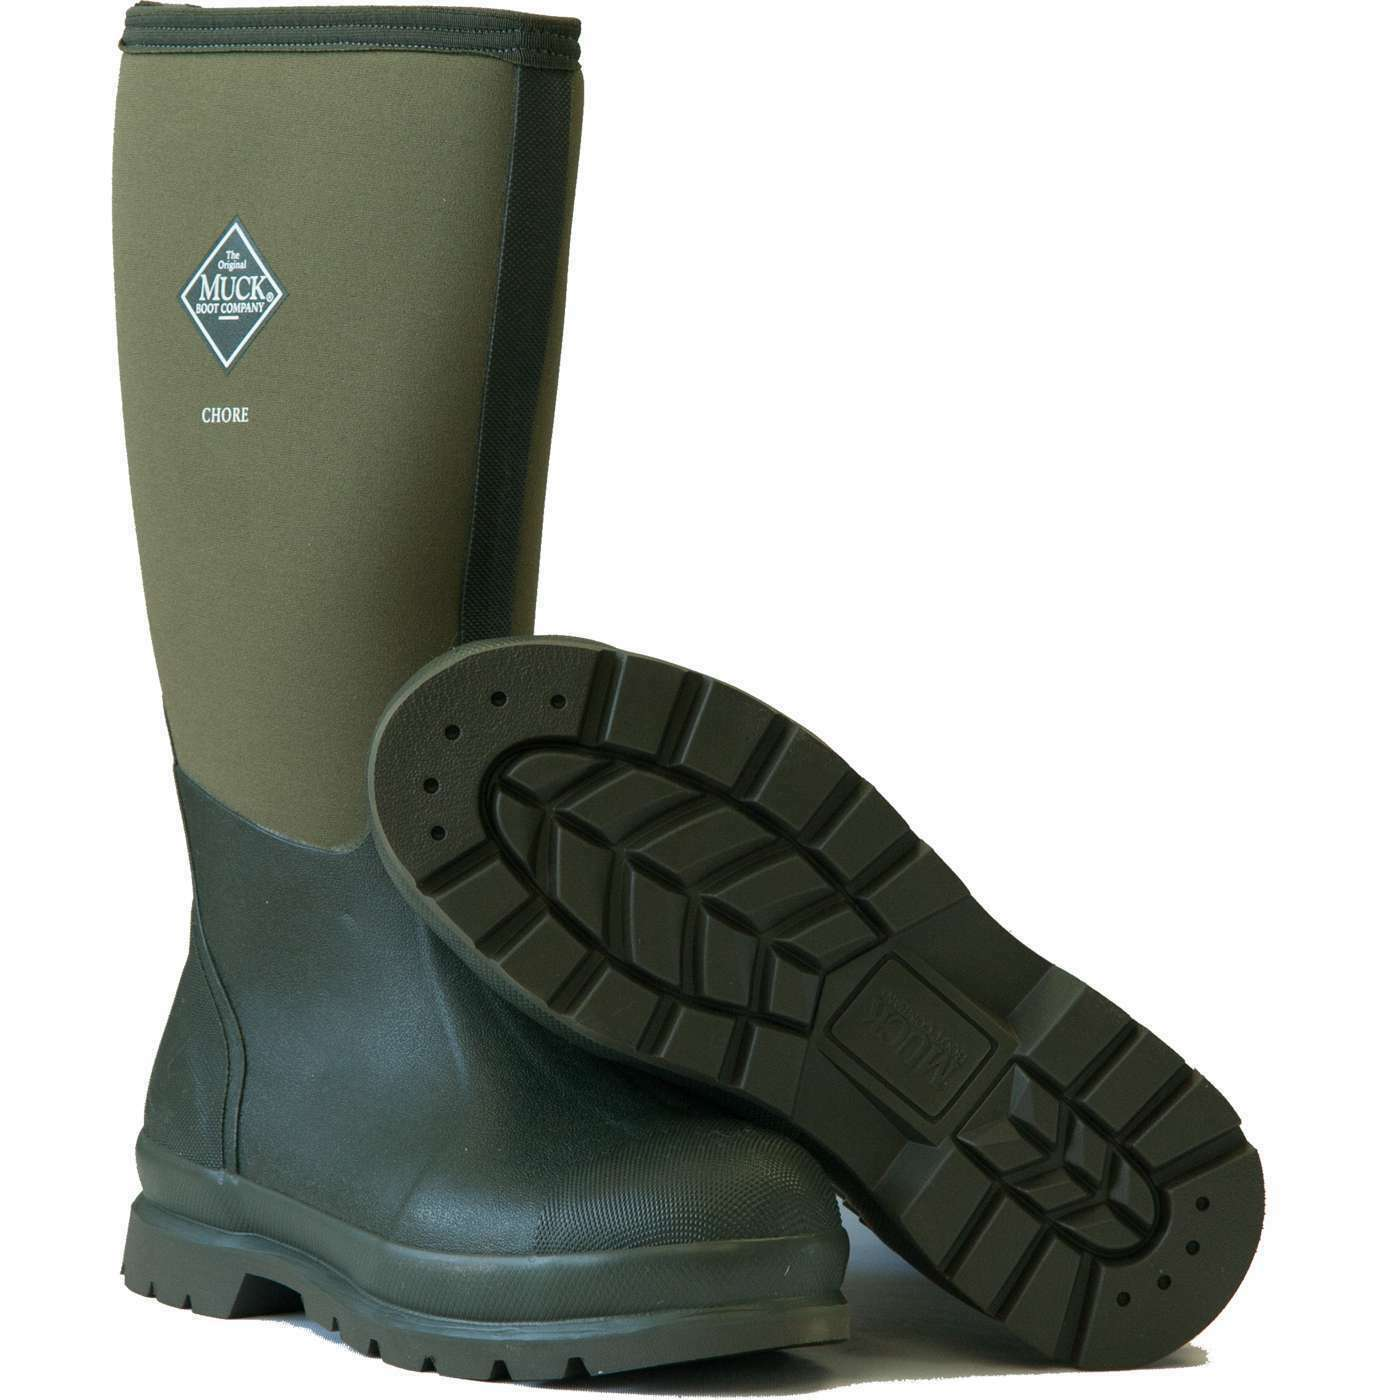 Muck Stiefel - Chore Classic Steel Toe Safety Wellington